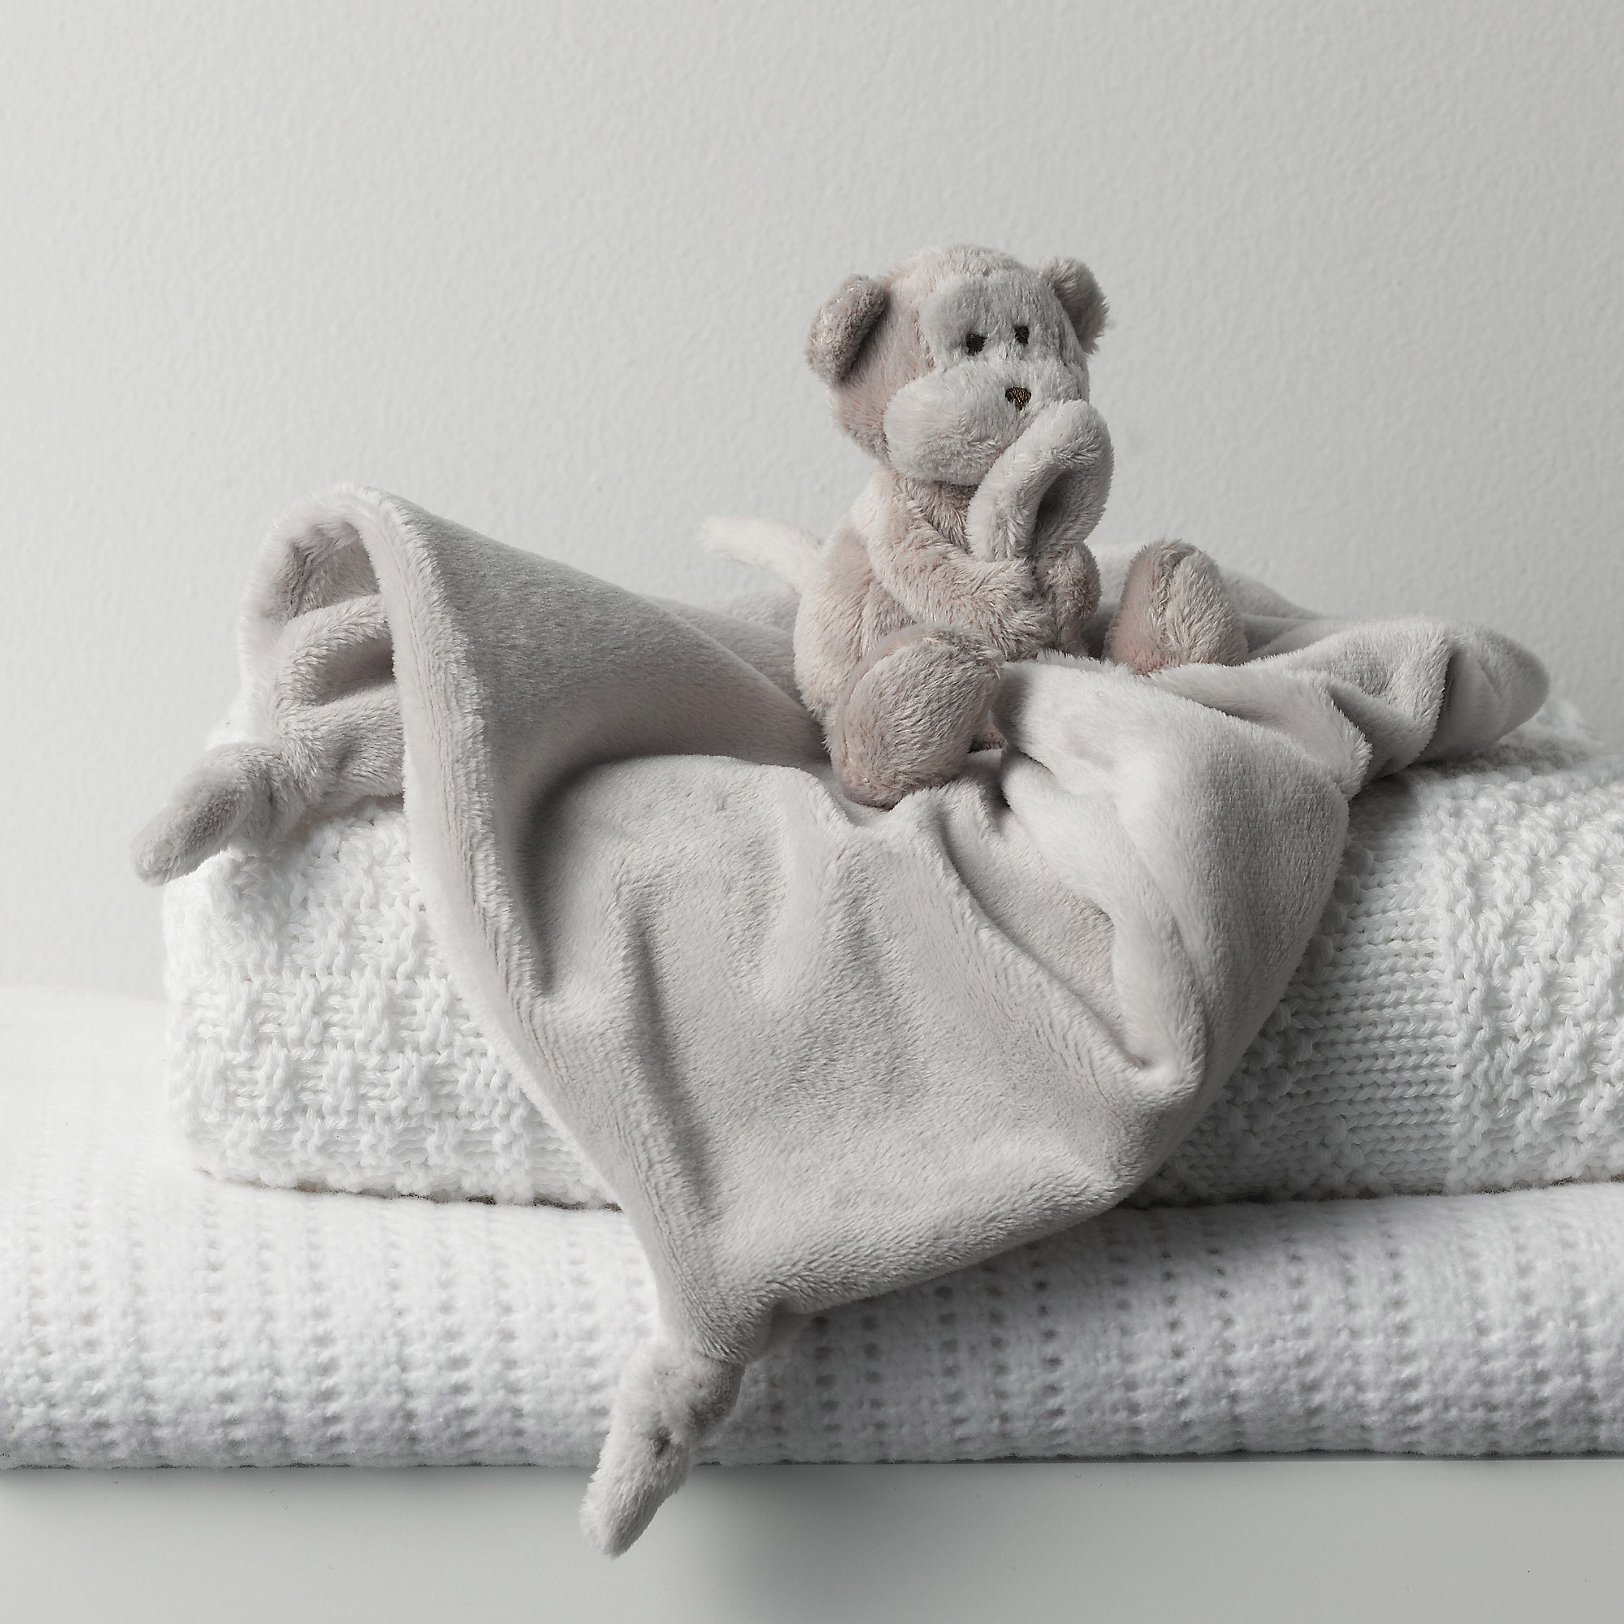 Monkey Comforter   Toys   The Little White Company   The White Company US. Monkey Comforter   Toys   The Little White Company   The White